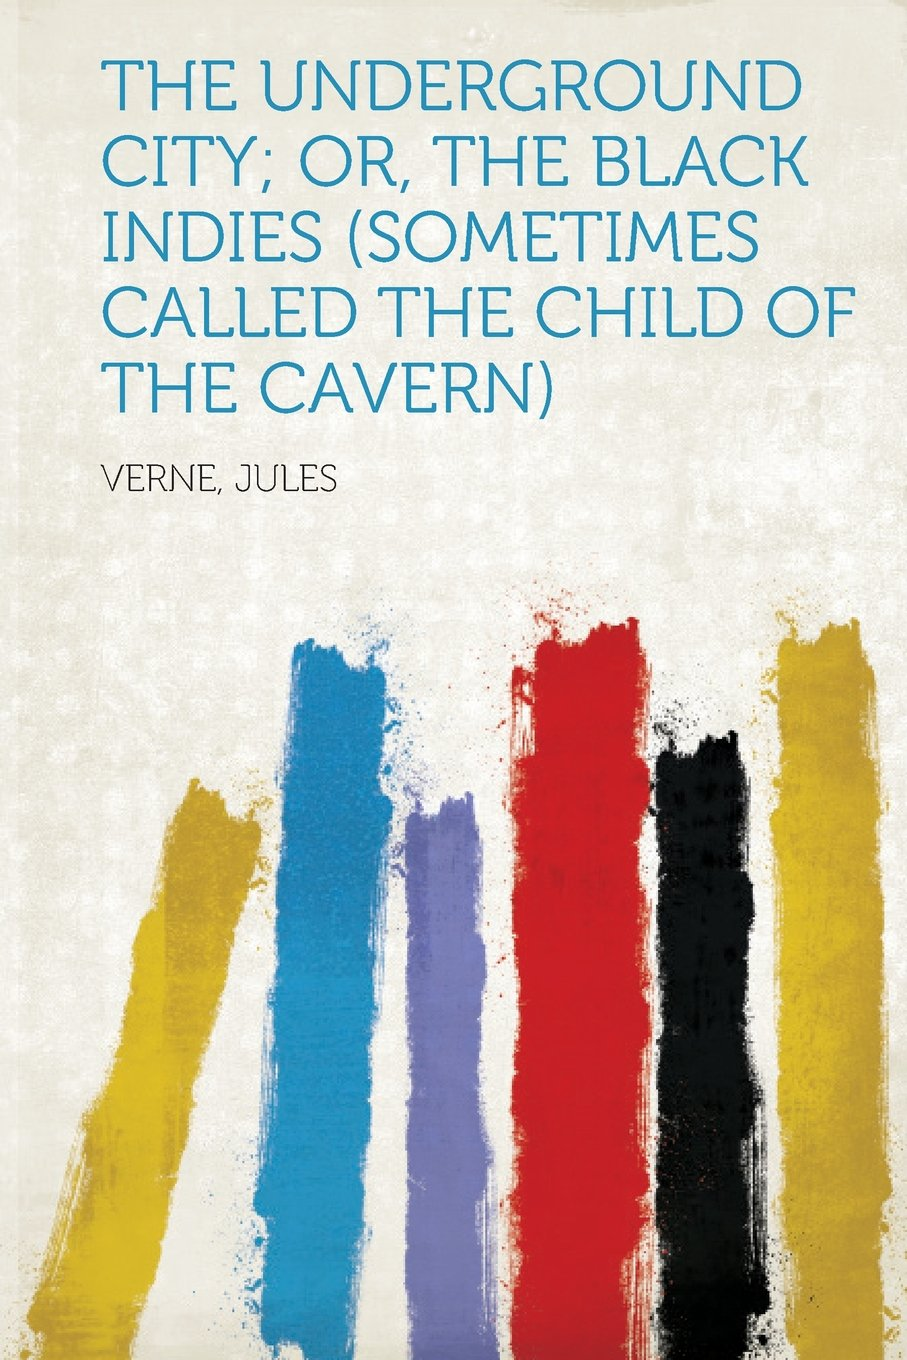 The Underground City; Or, The Black Indies (Sometimes Called The Child of the Cavern) pdf